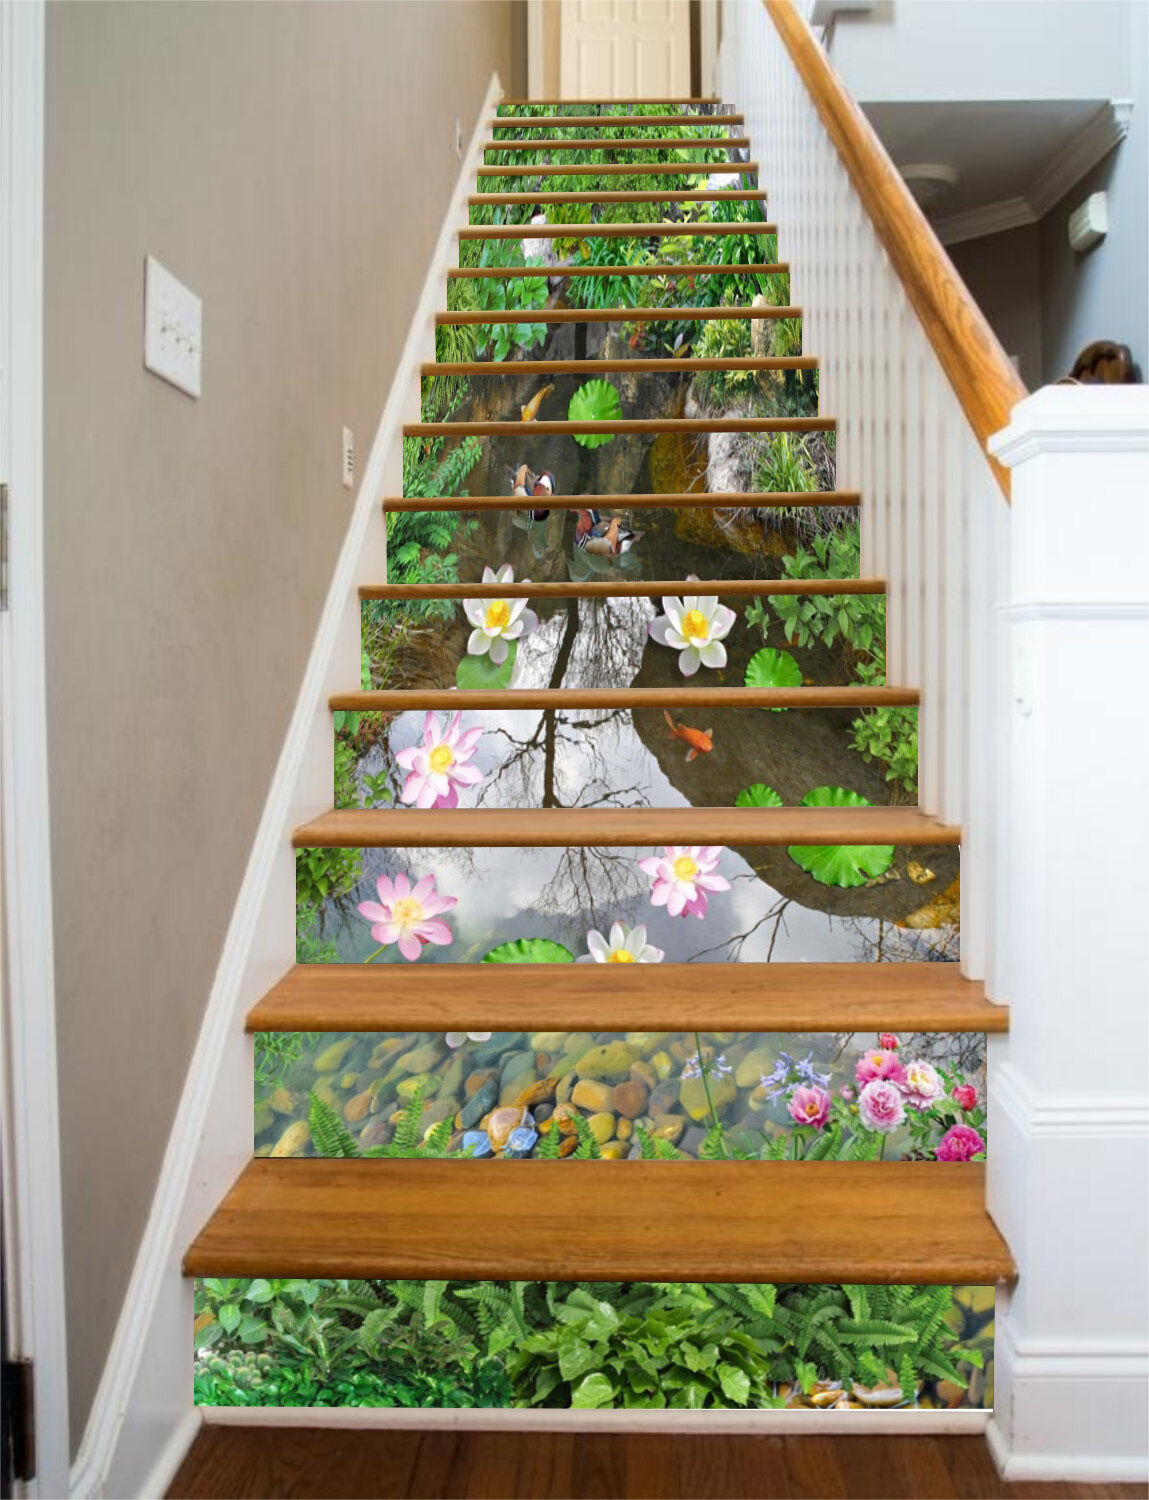 3D Pond leaf 4 Stair Risers Decoration Photo Mural Vinyl Decal Wallpaper UK